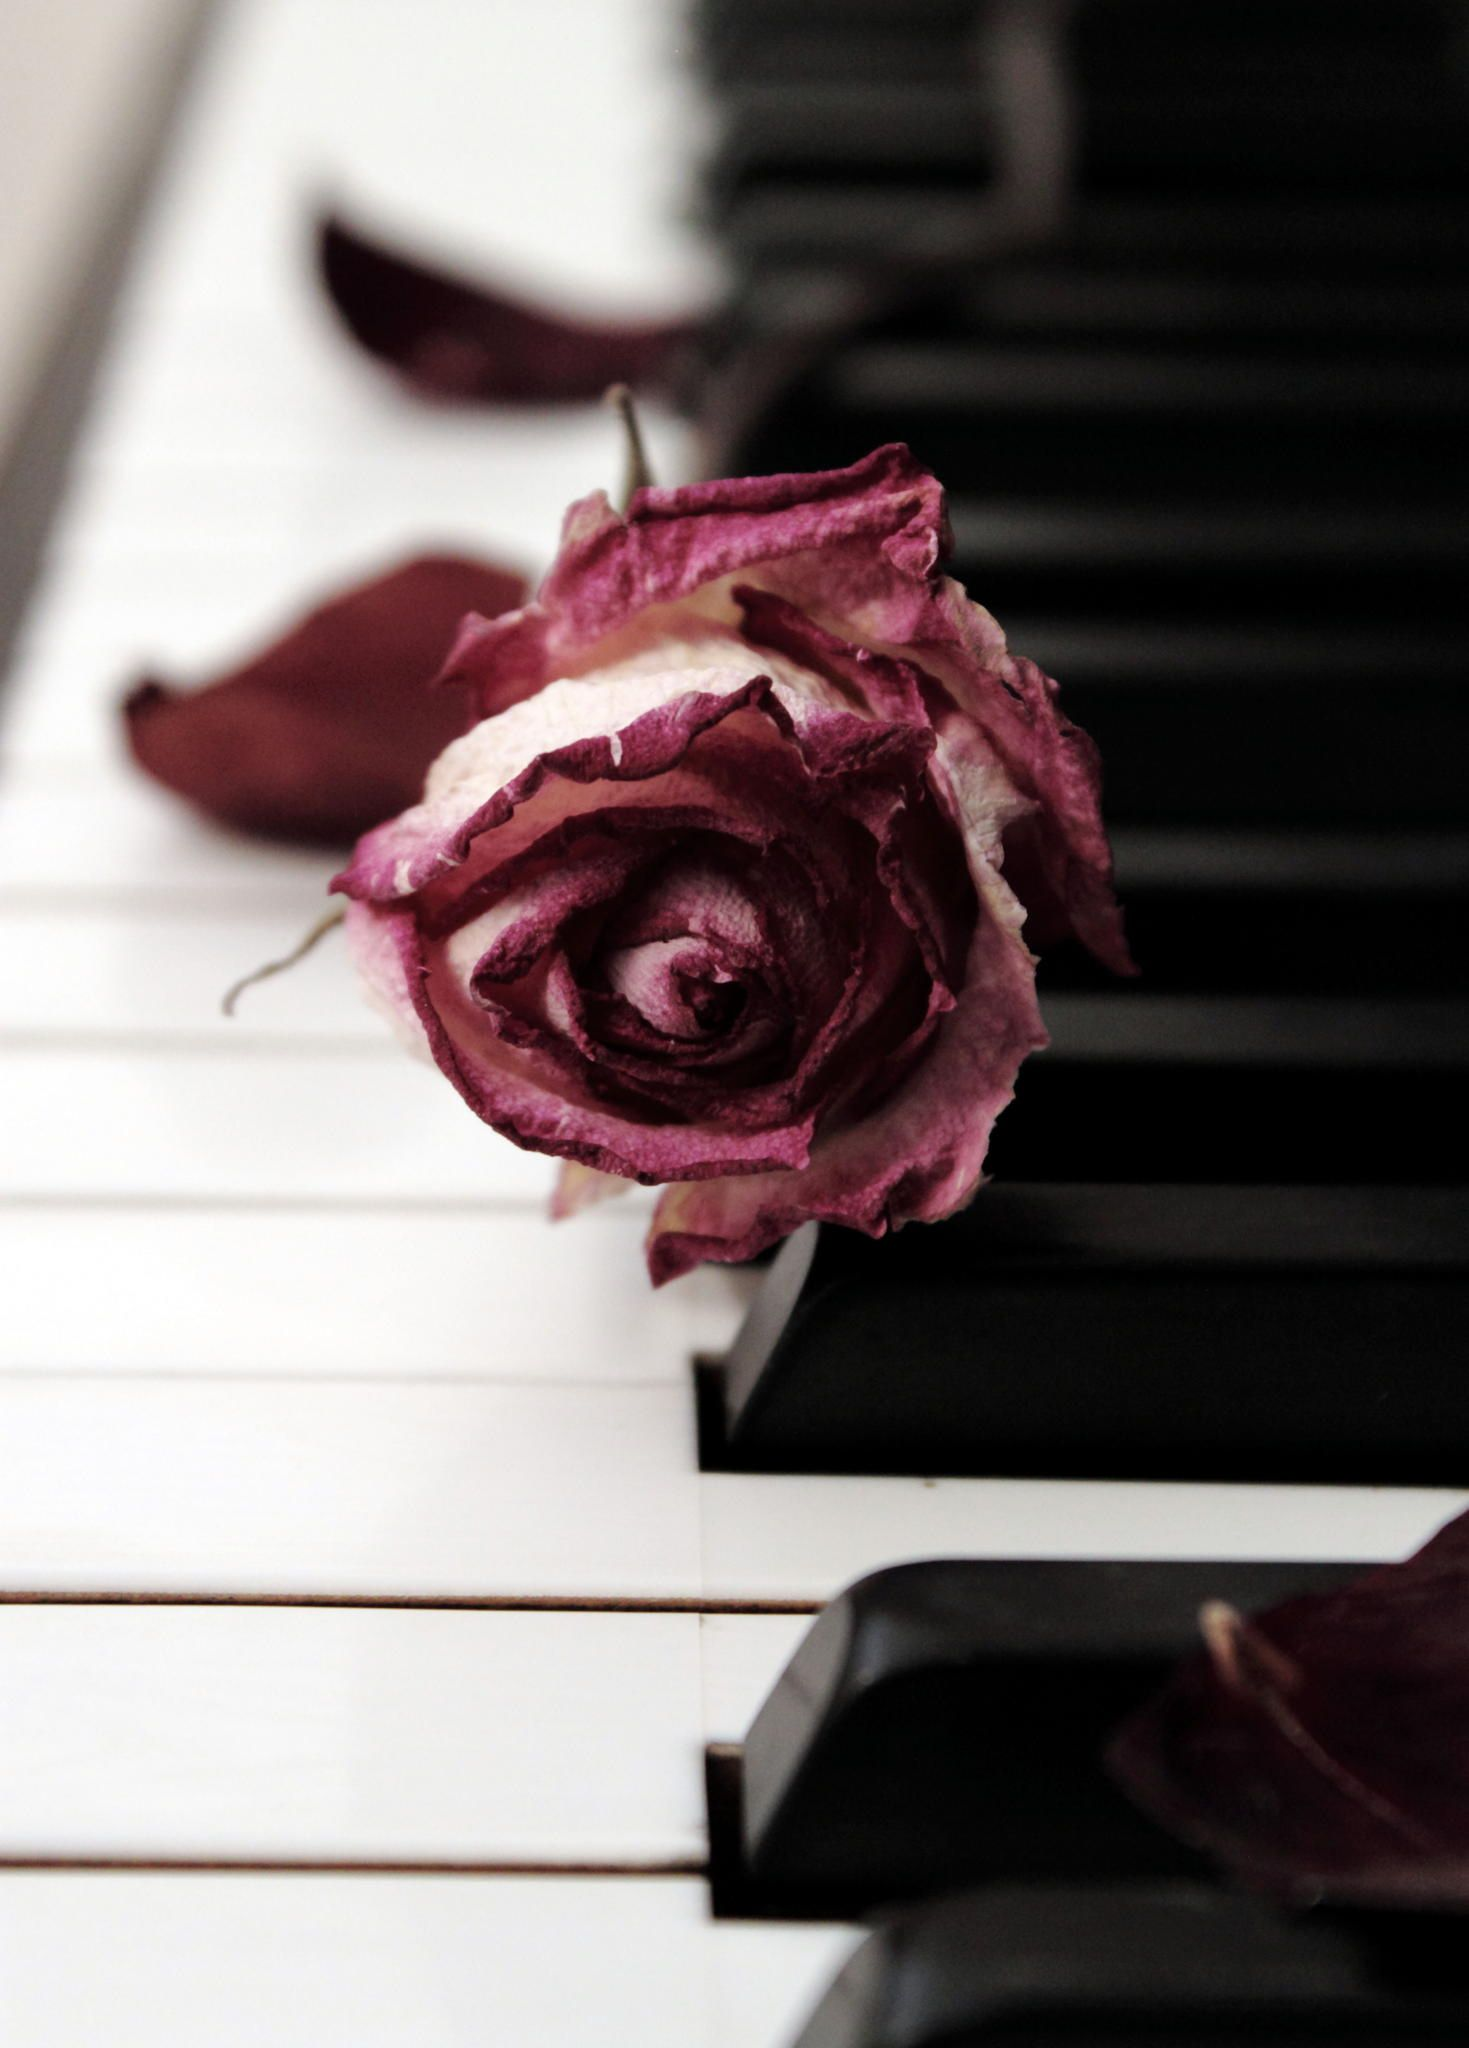 A slightly withered Marsala rose rests softly upon piano keys. All of a sudden I feel like singing a love song... #LGLimitlessDesign #Contest